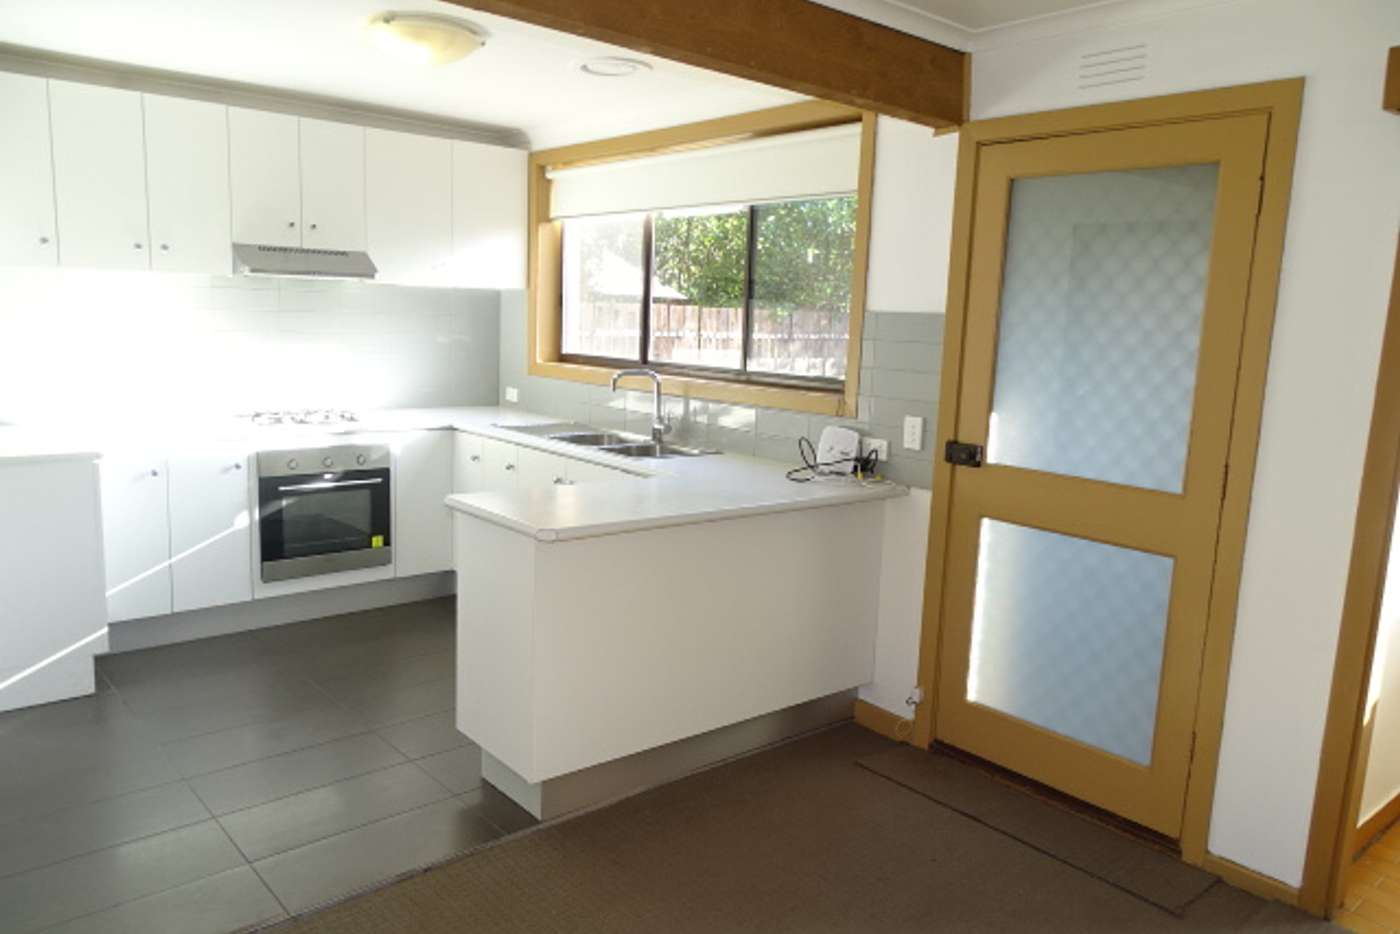 Seventh view of Homely apartment listing, 3/33 Shaftsbury Street, Brunswick VIC 3056